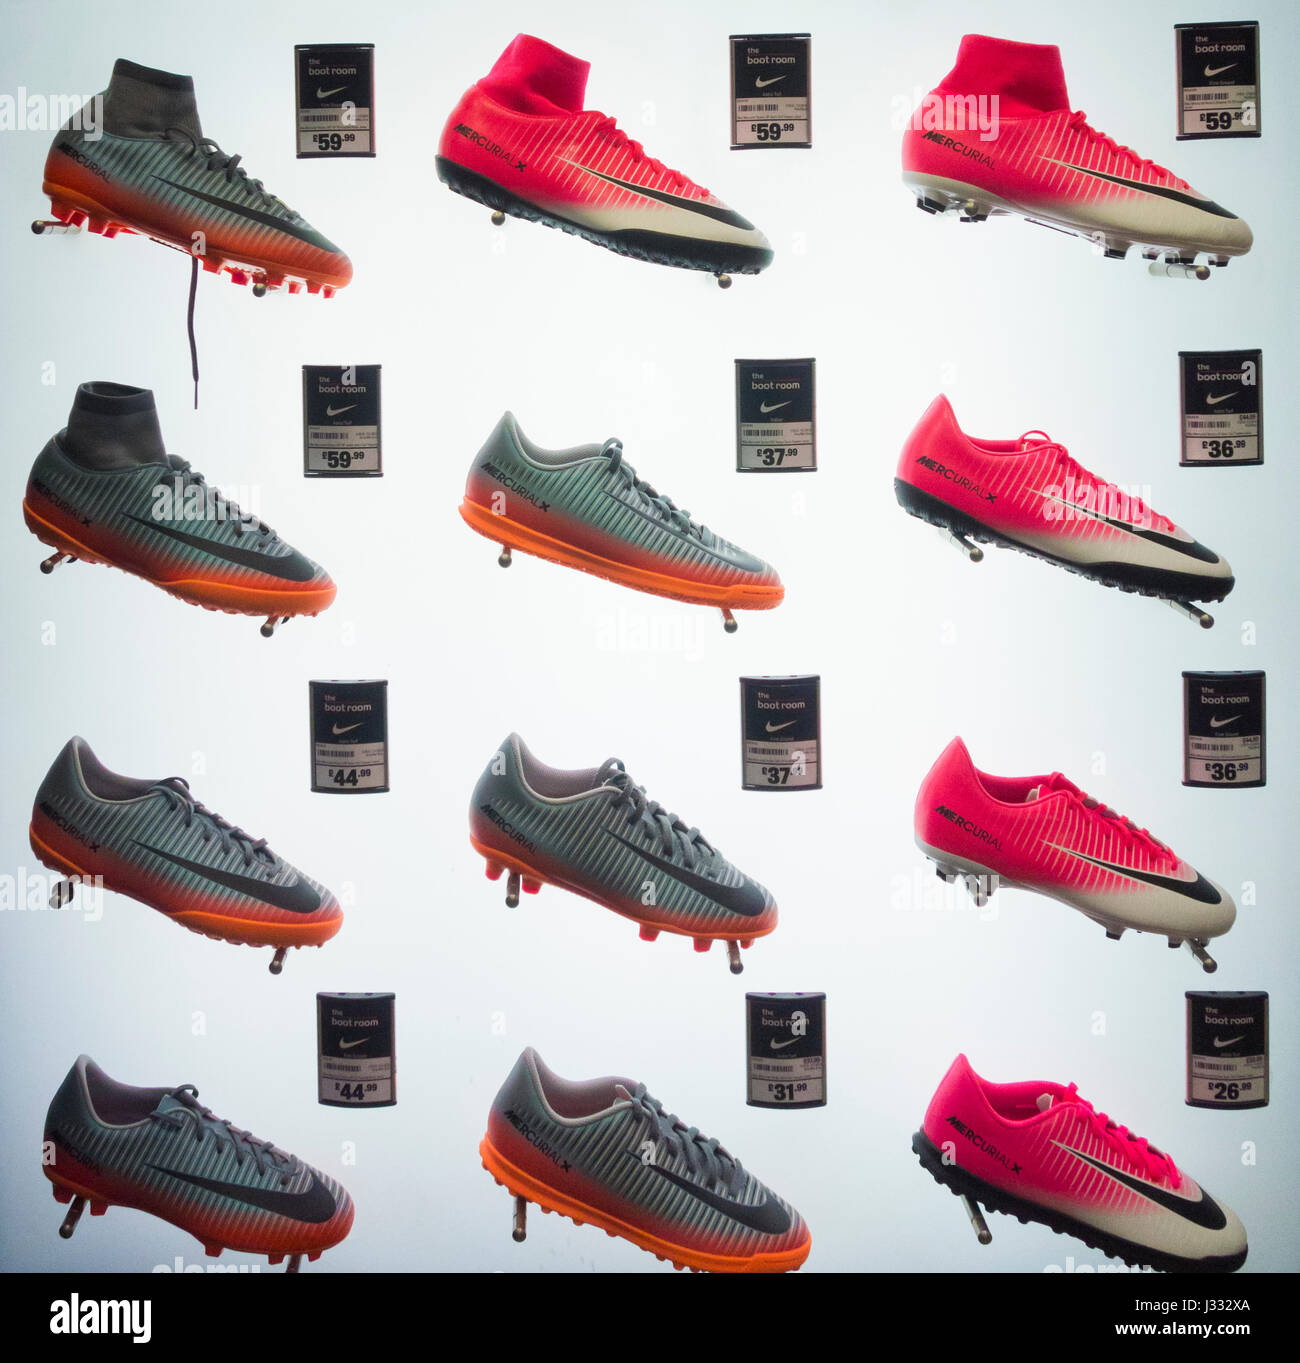 Decoración contacto En contra  Nike Football Boots High Resolution Stock Photography and Images - Alamy